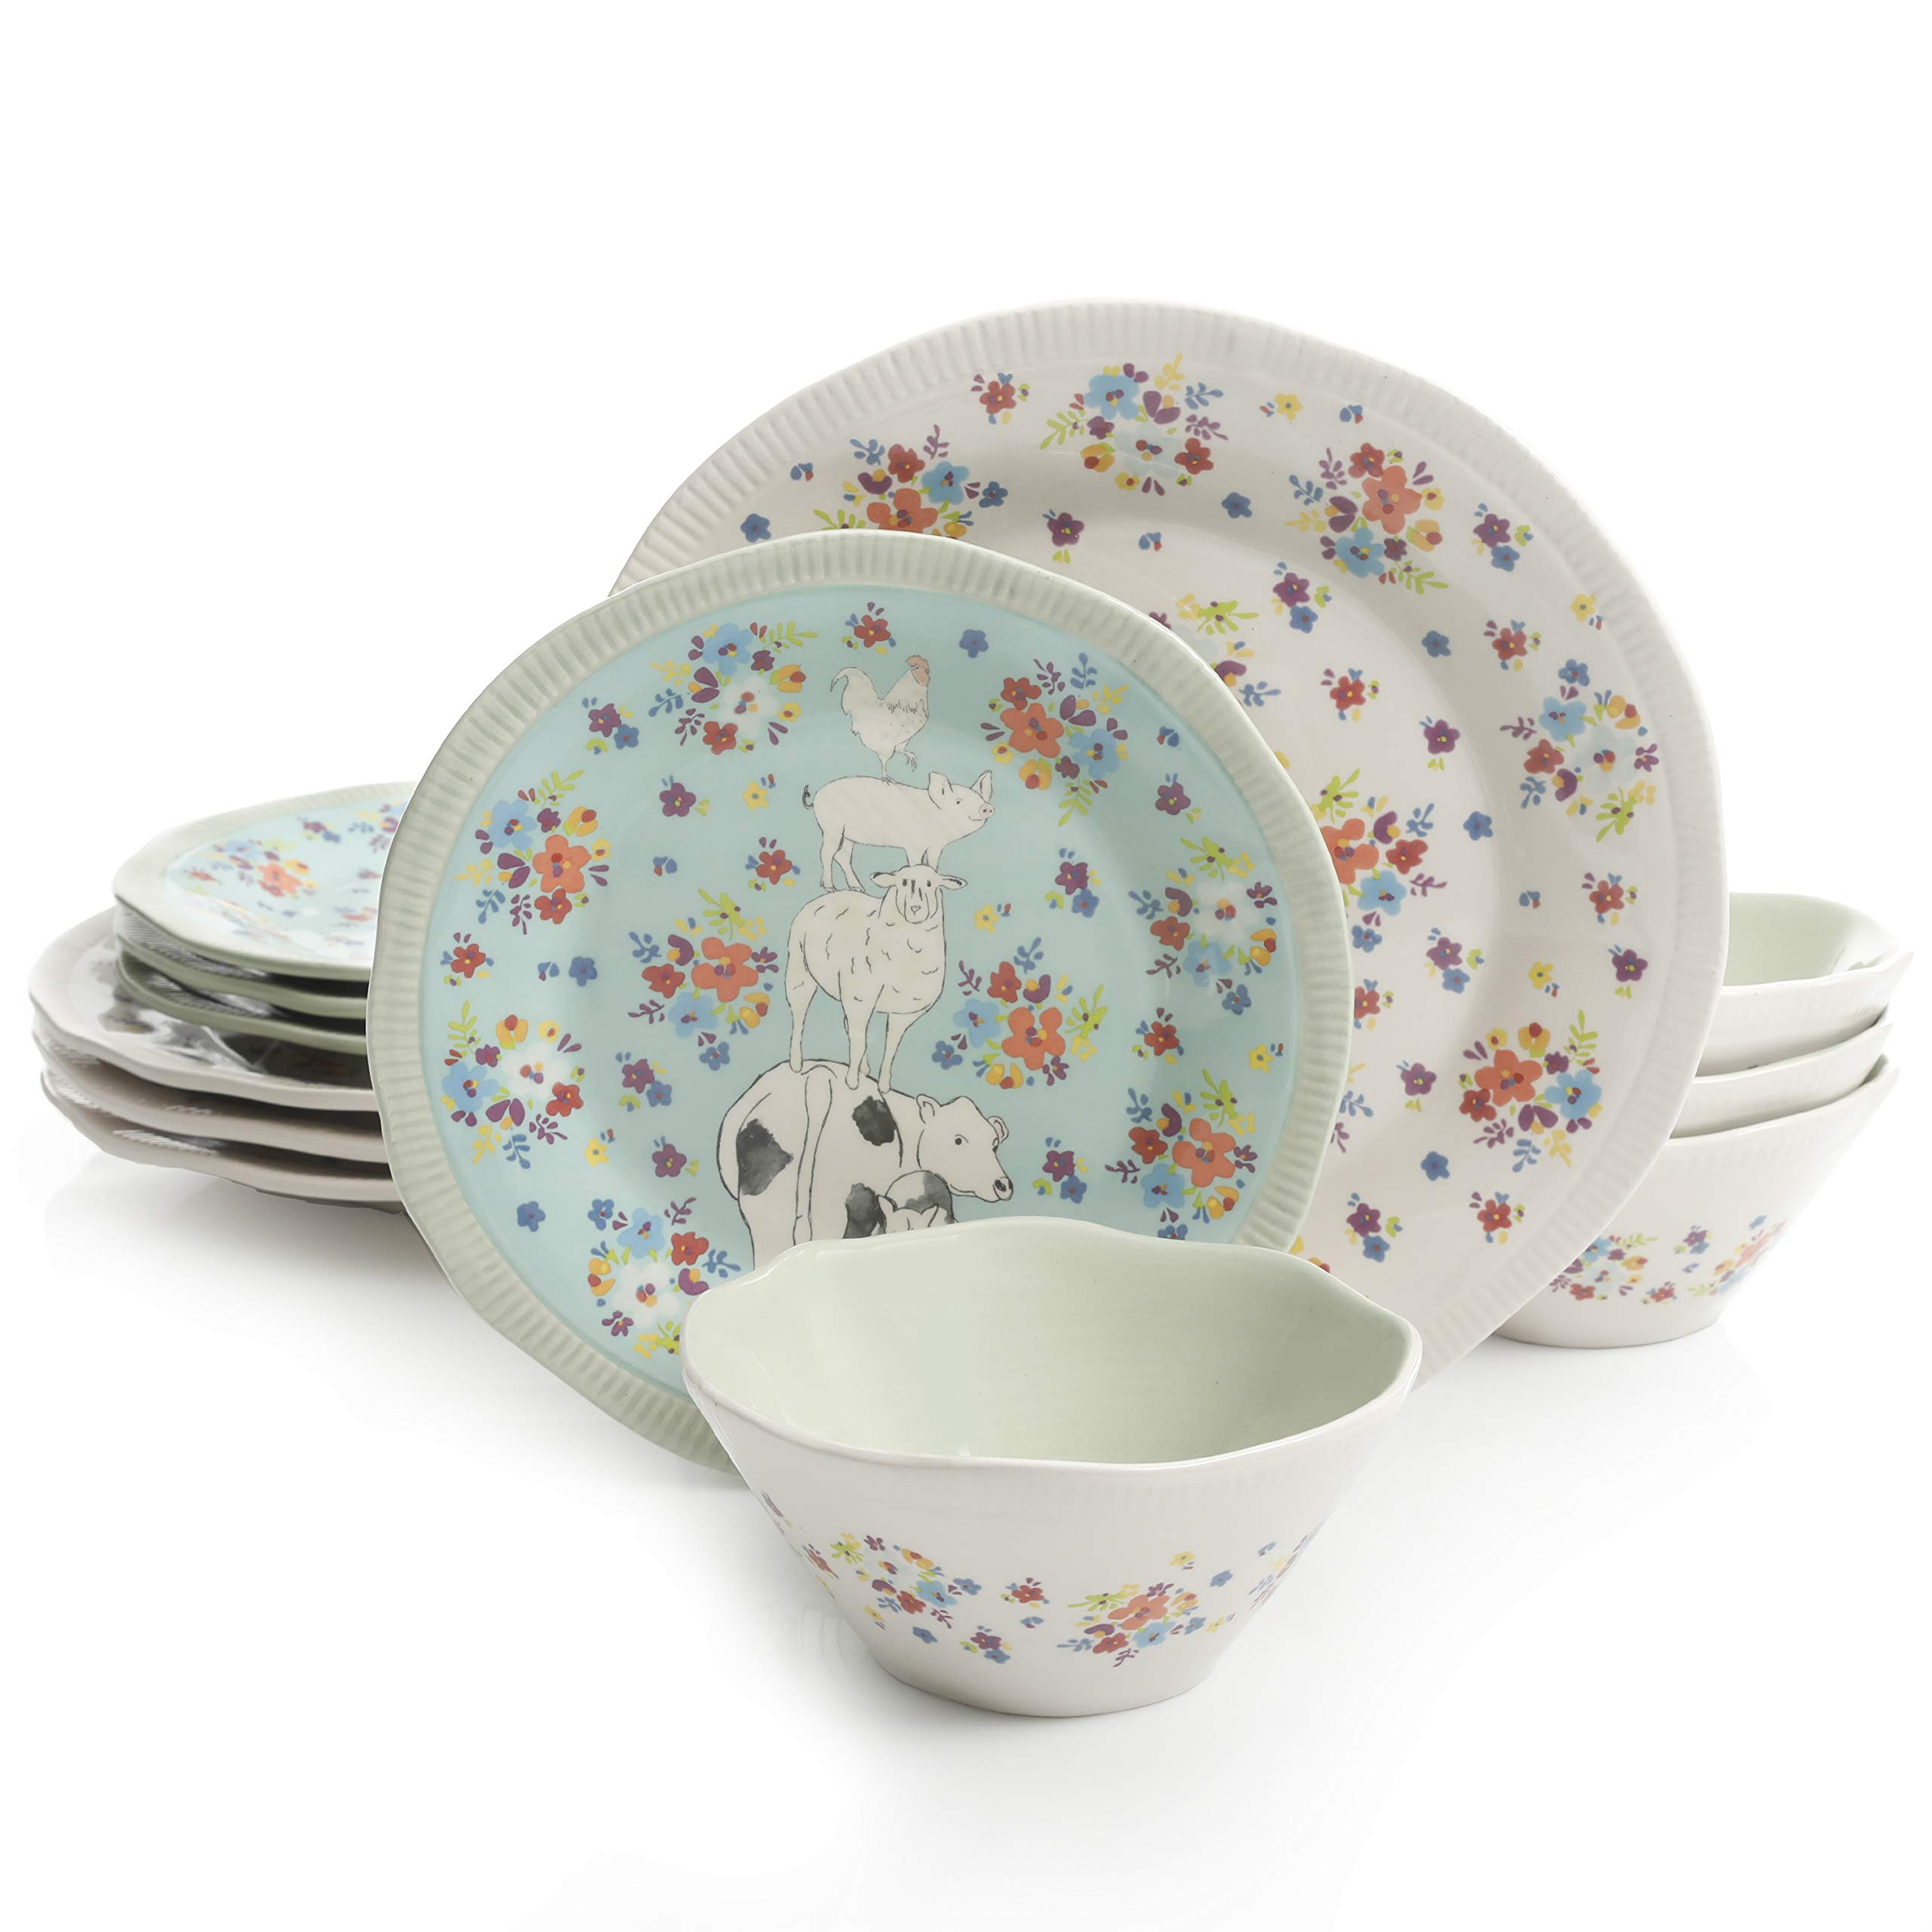 Urban Market by Gibson 99869.12RM Life on the Farm 12pc dinnerware set, Blue/White by Urban Market by Gibson (Image #1)